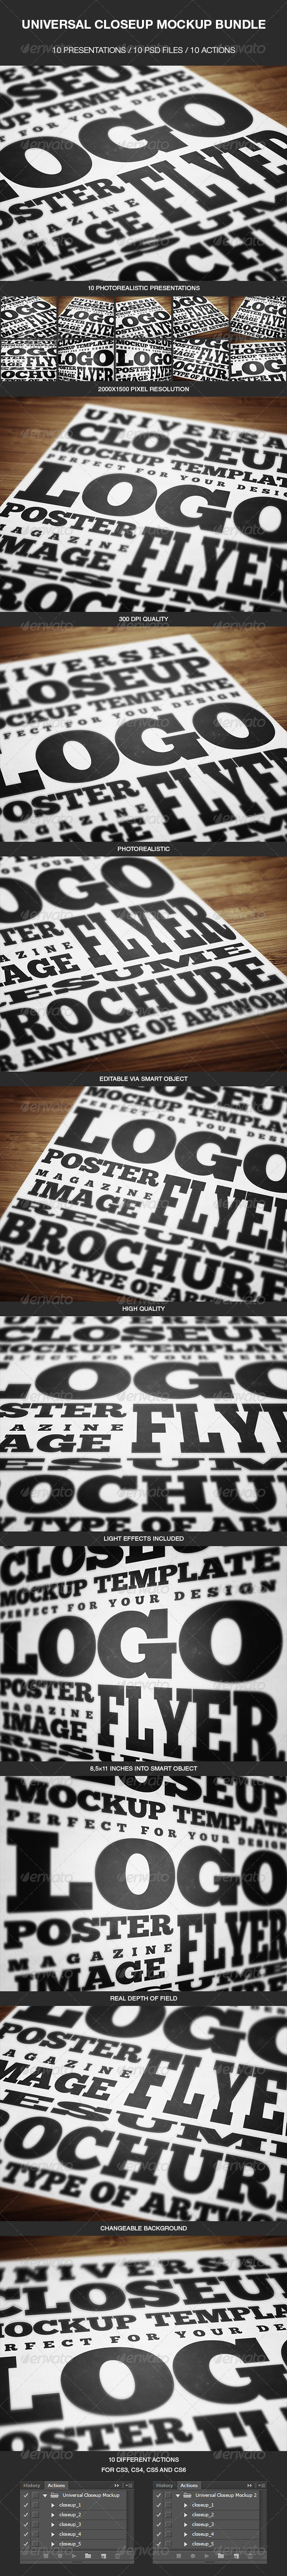 Universal Closeup Mockup Bundle - Print Product Mock-Ups